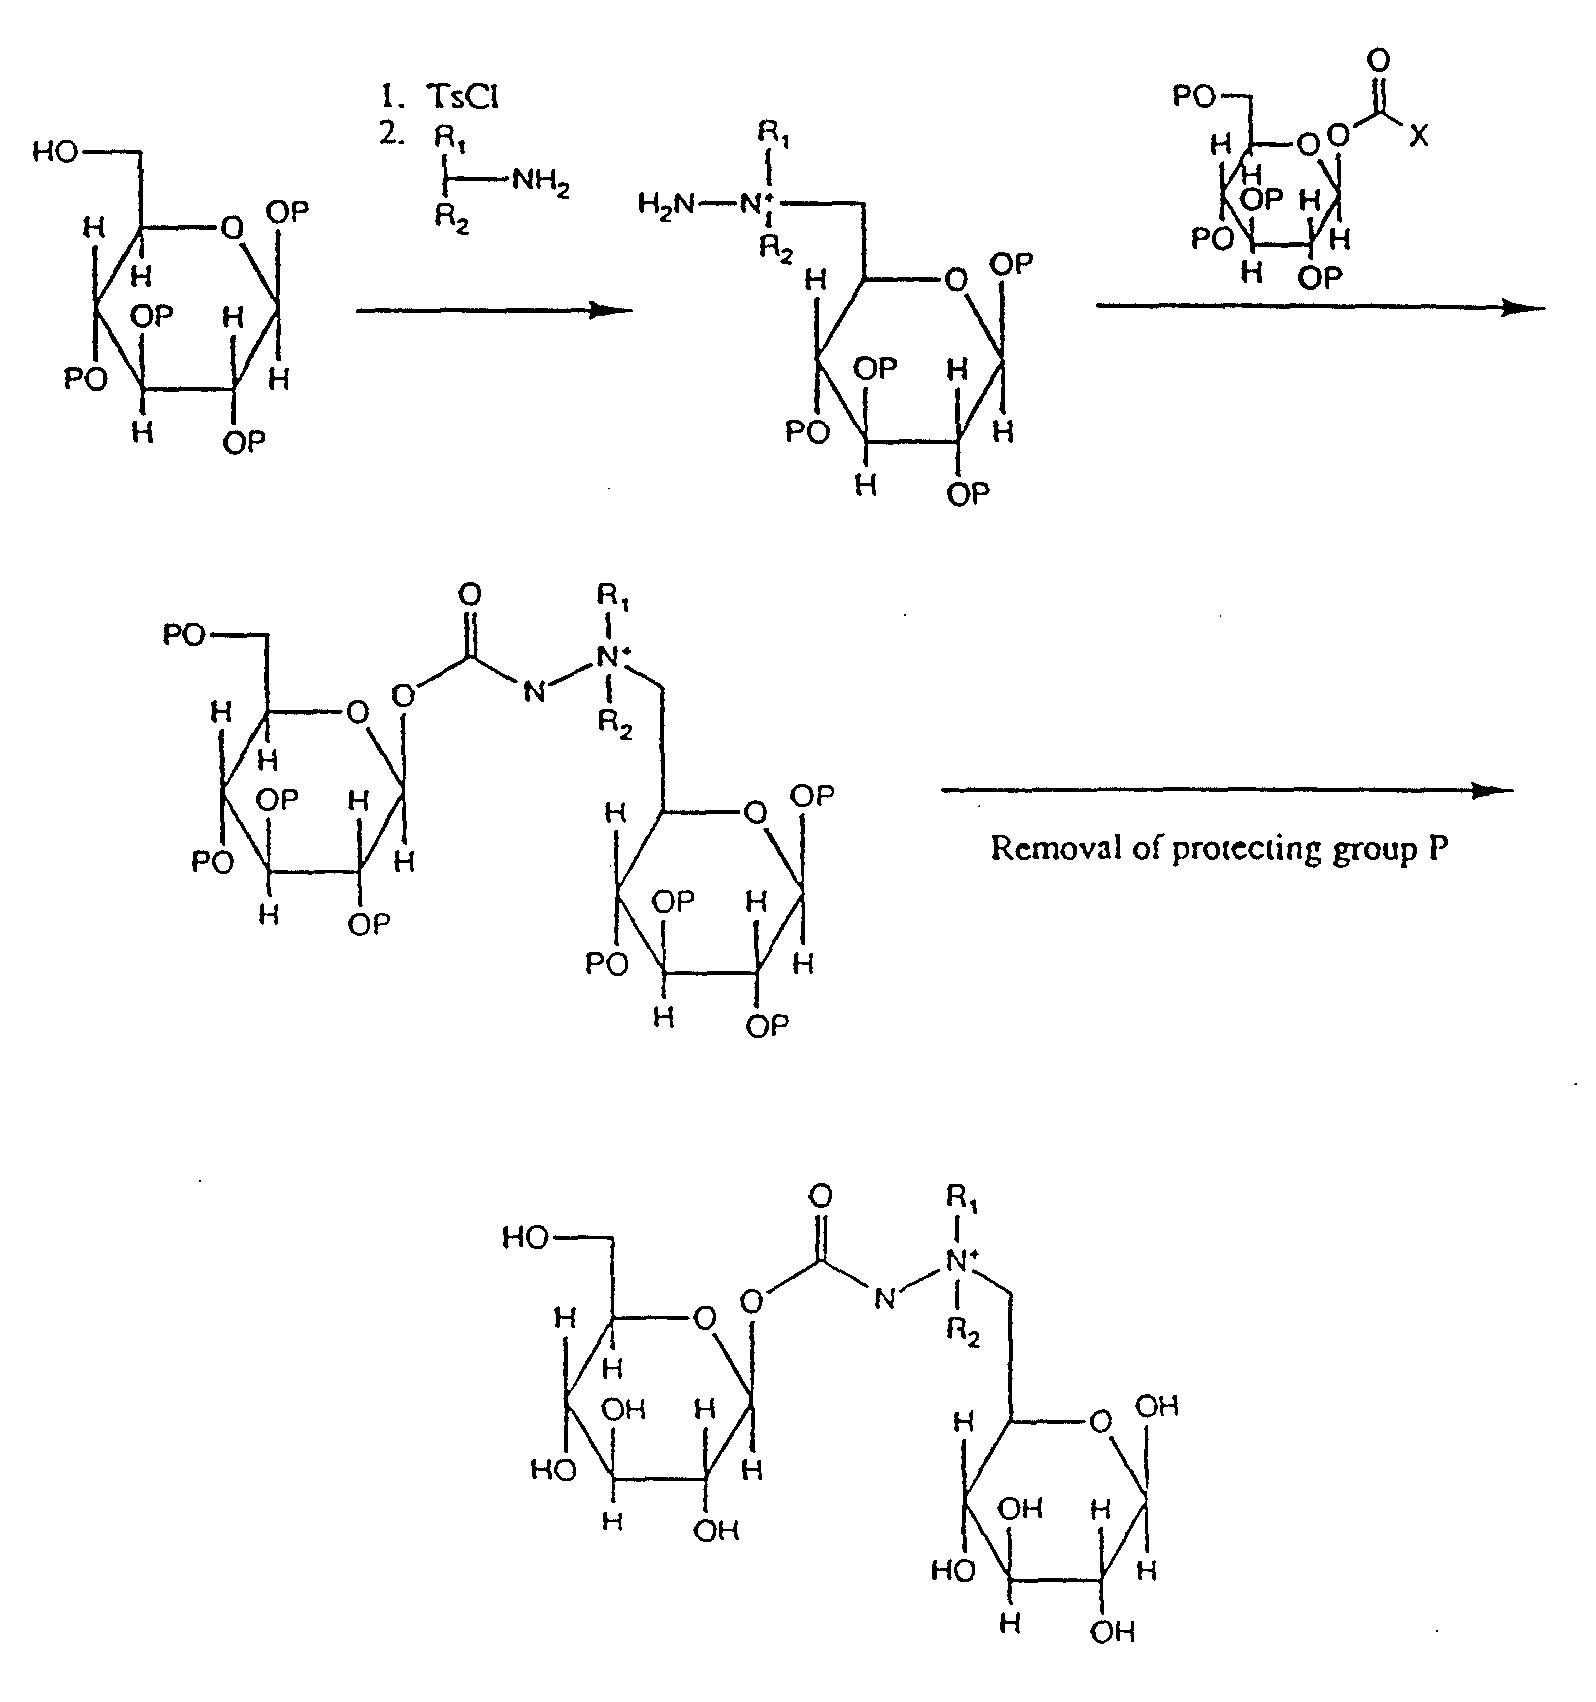 wo1994001102a1 aminimide containing molecules and materials as Engineered Structures Inc figure imgf000071 0001